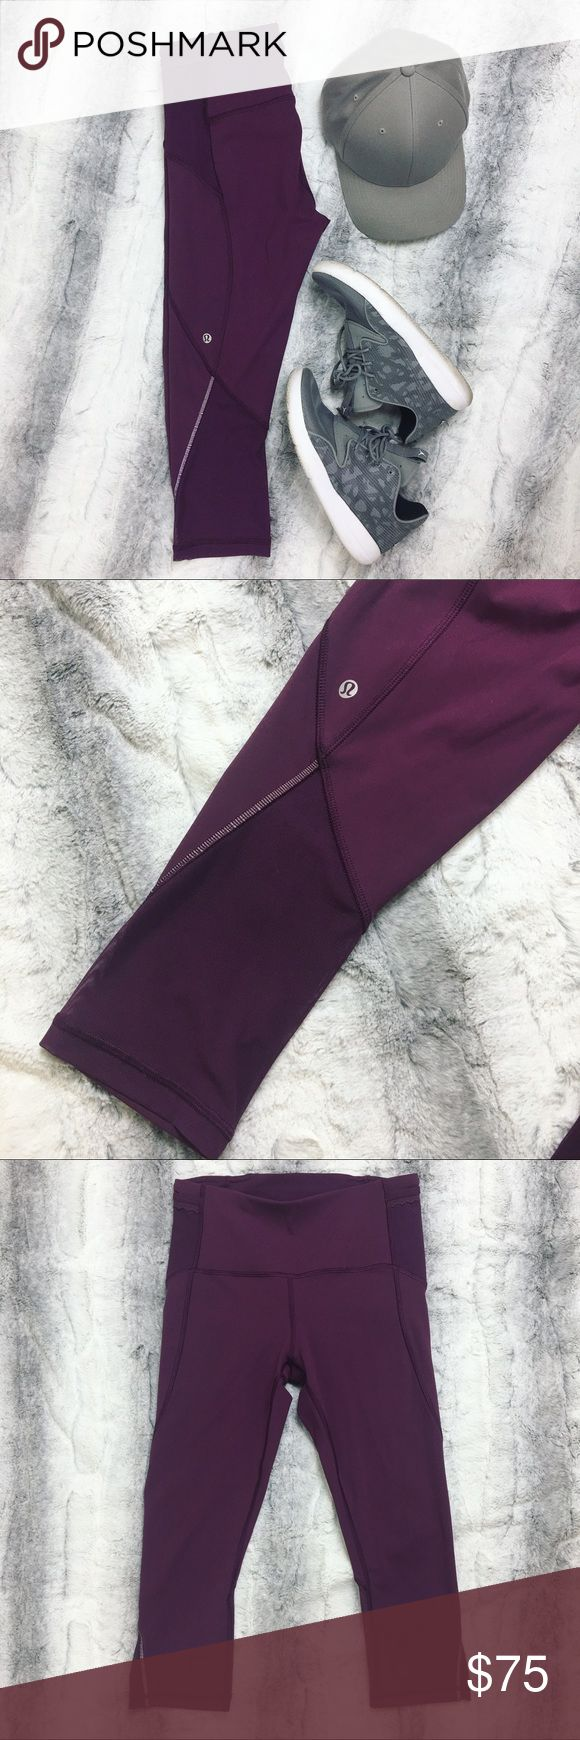 Lululemon • Purple Mesh Leggings Selling these amazing purple leggings by Lululemon. They have mesh pockets on the side and mesh paneling on the back. These are absolutely adorable. Worn only a couple times, still in excellent condition!! 💋 lululemon athletica Pants Leggings